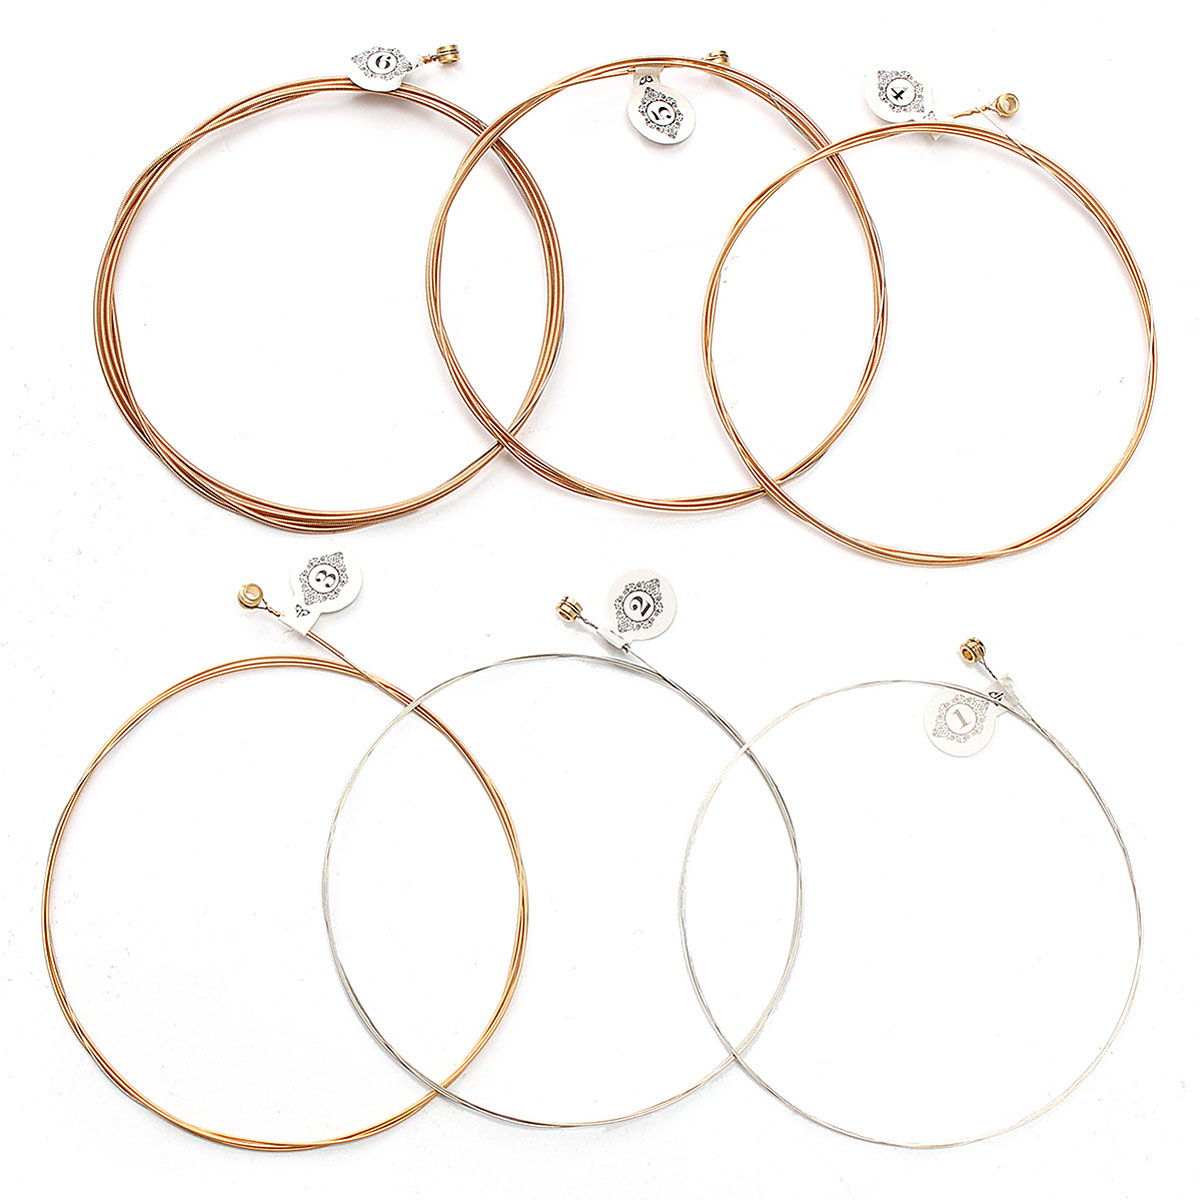 KIWI AKP12 Professional Acoustic Soft Guitar Strings 6pcs Set Coated Steel String Copper